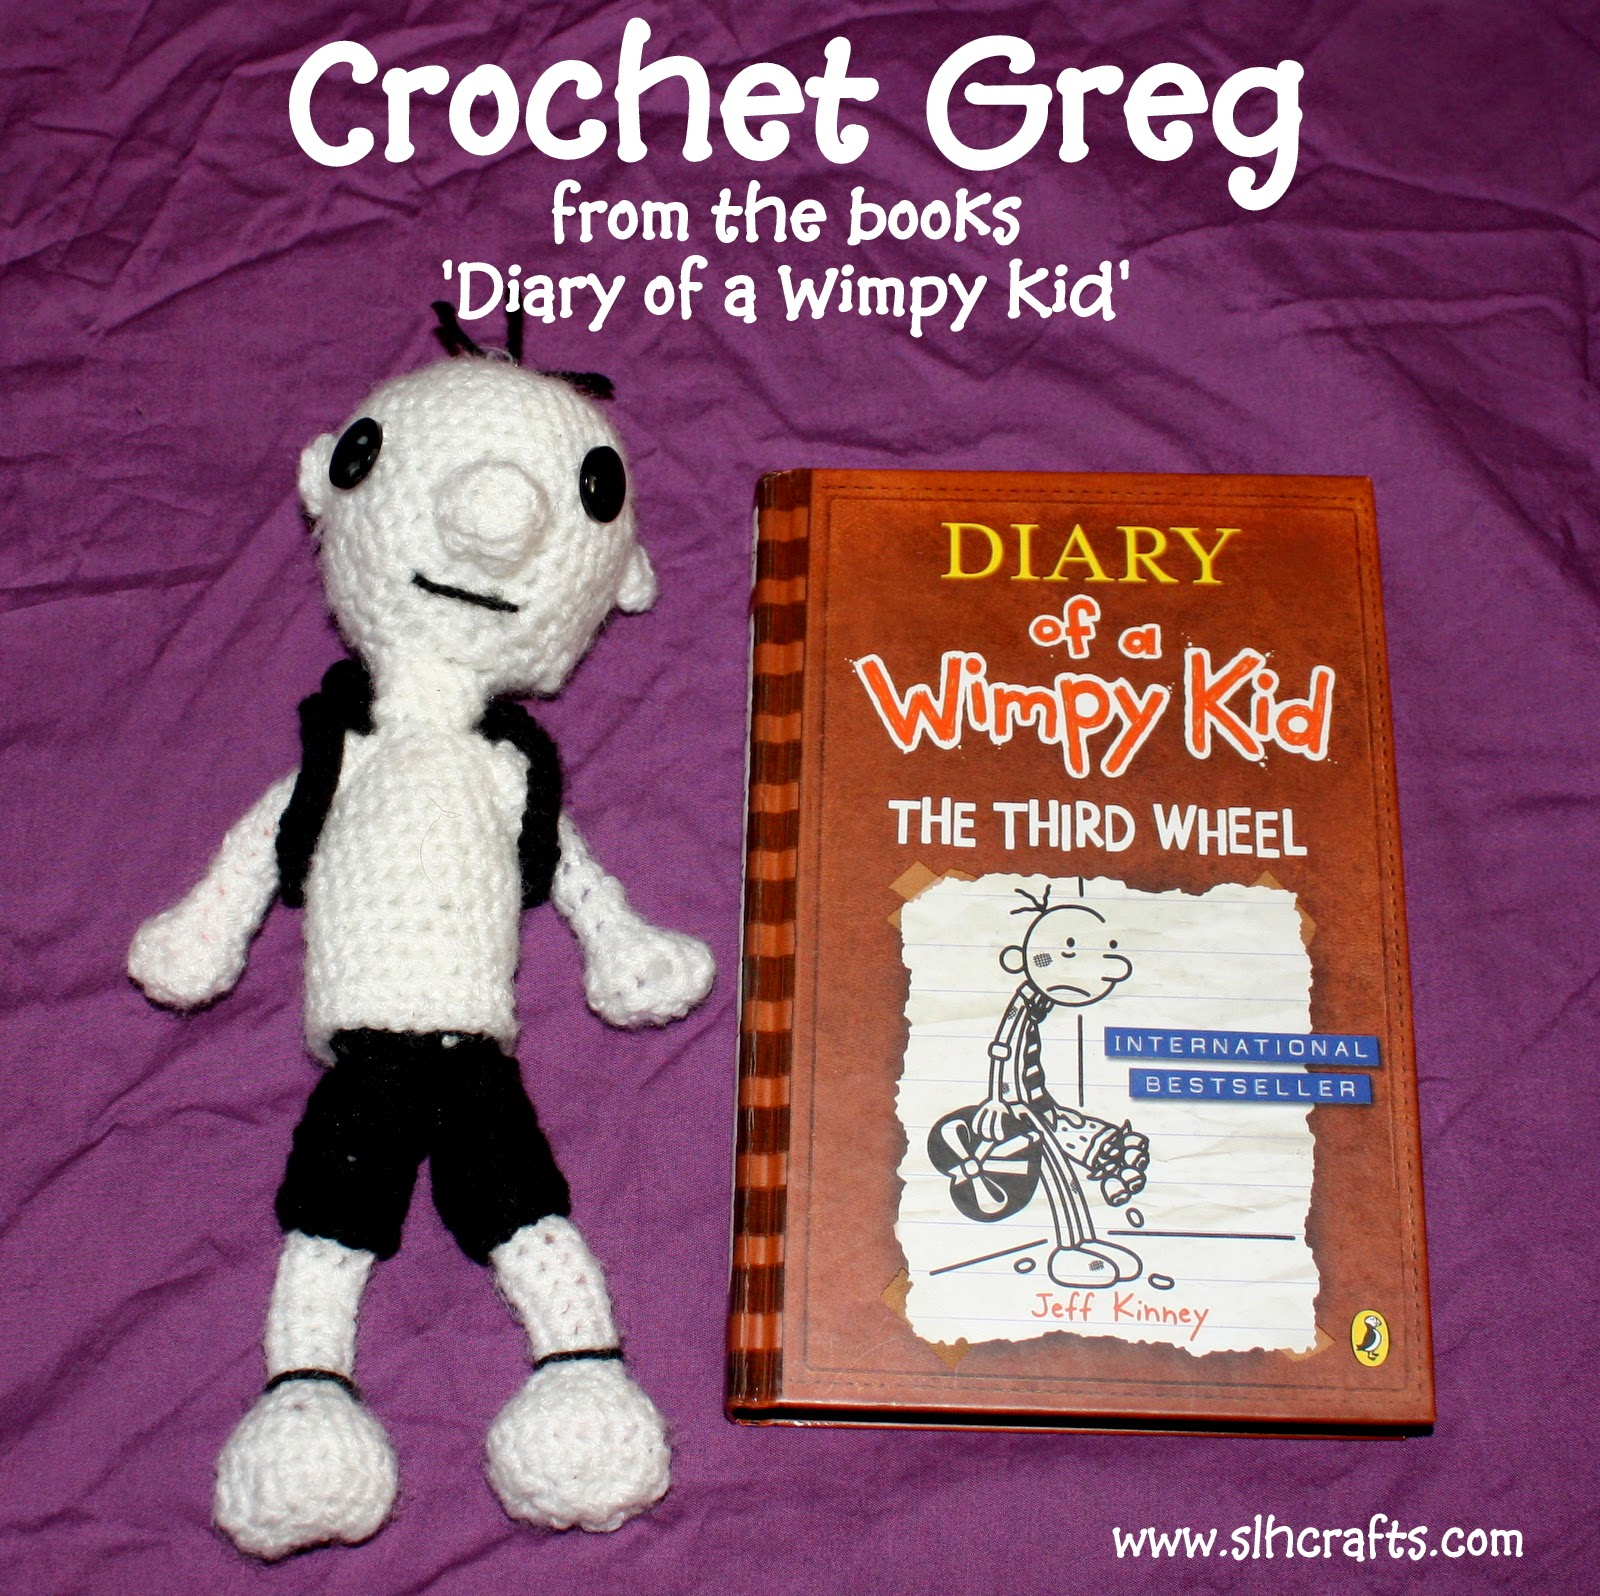 slh crafts crochet greg diary of a wimpy kid